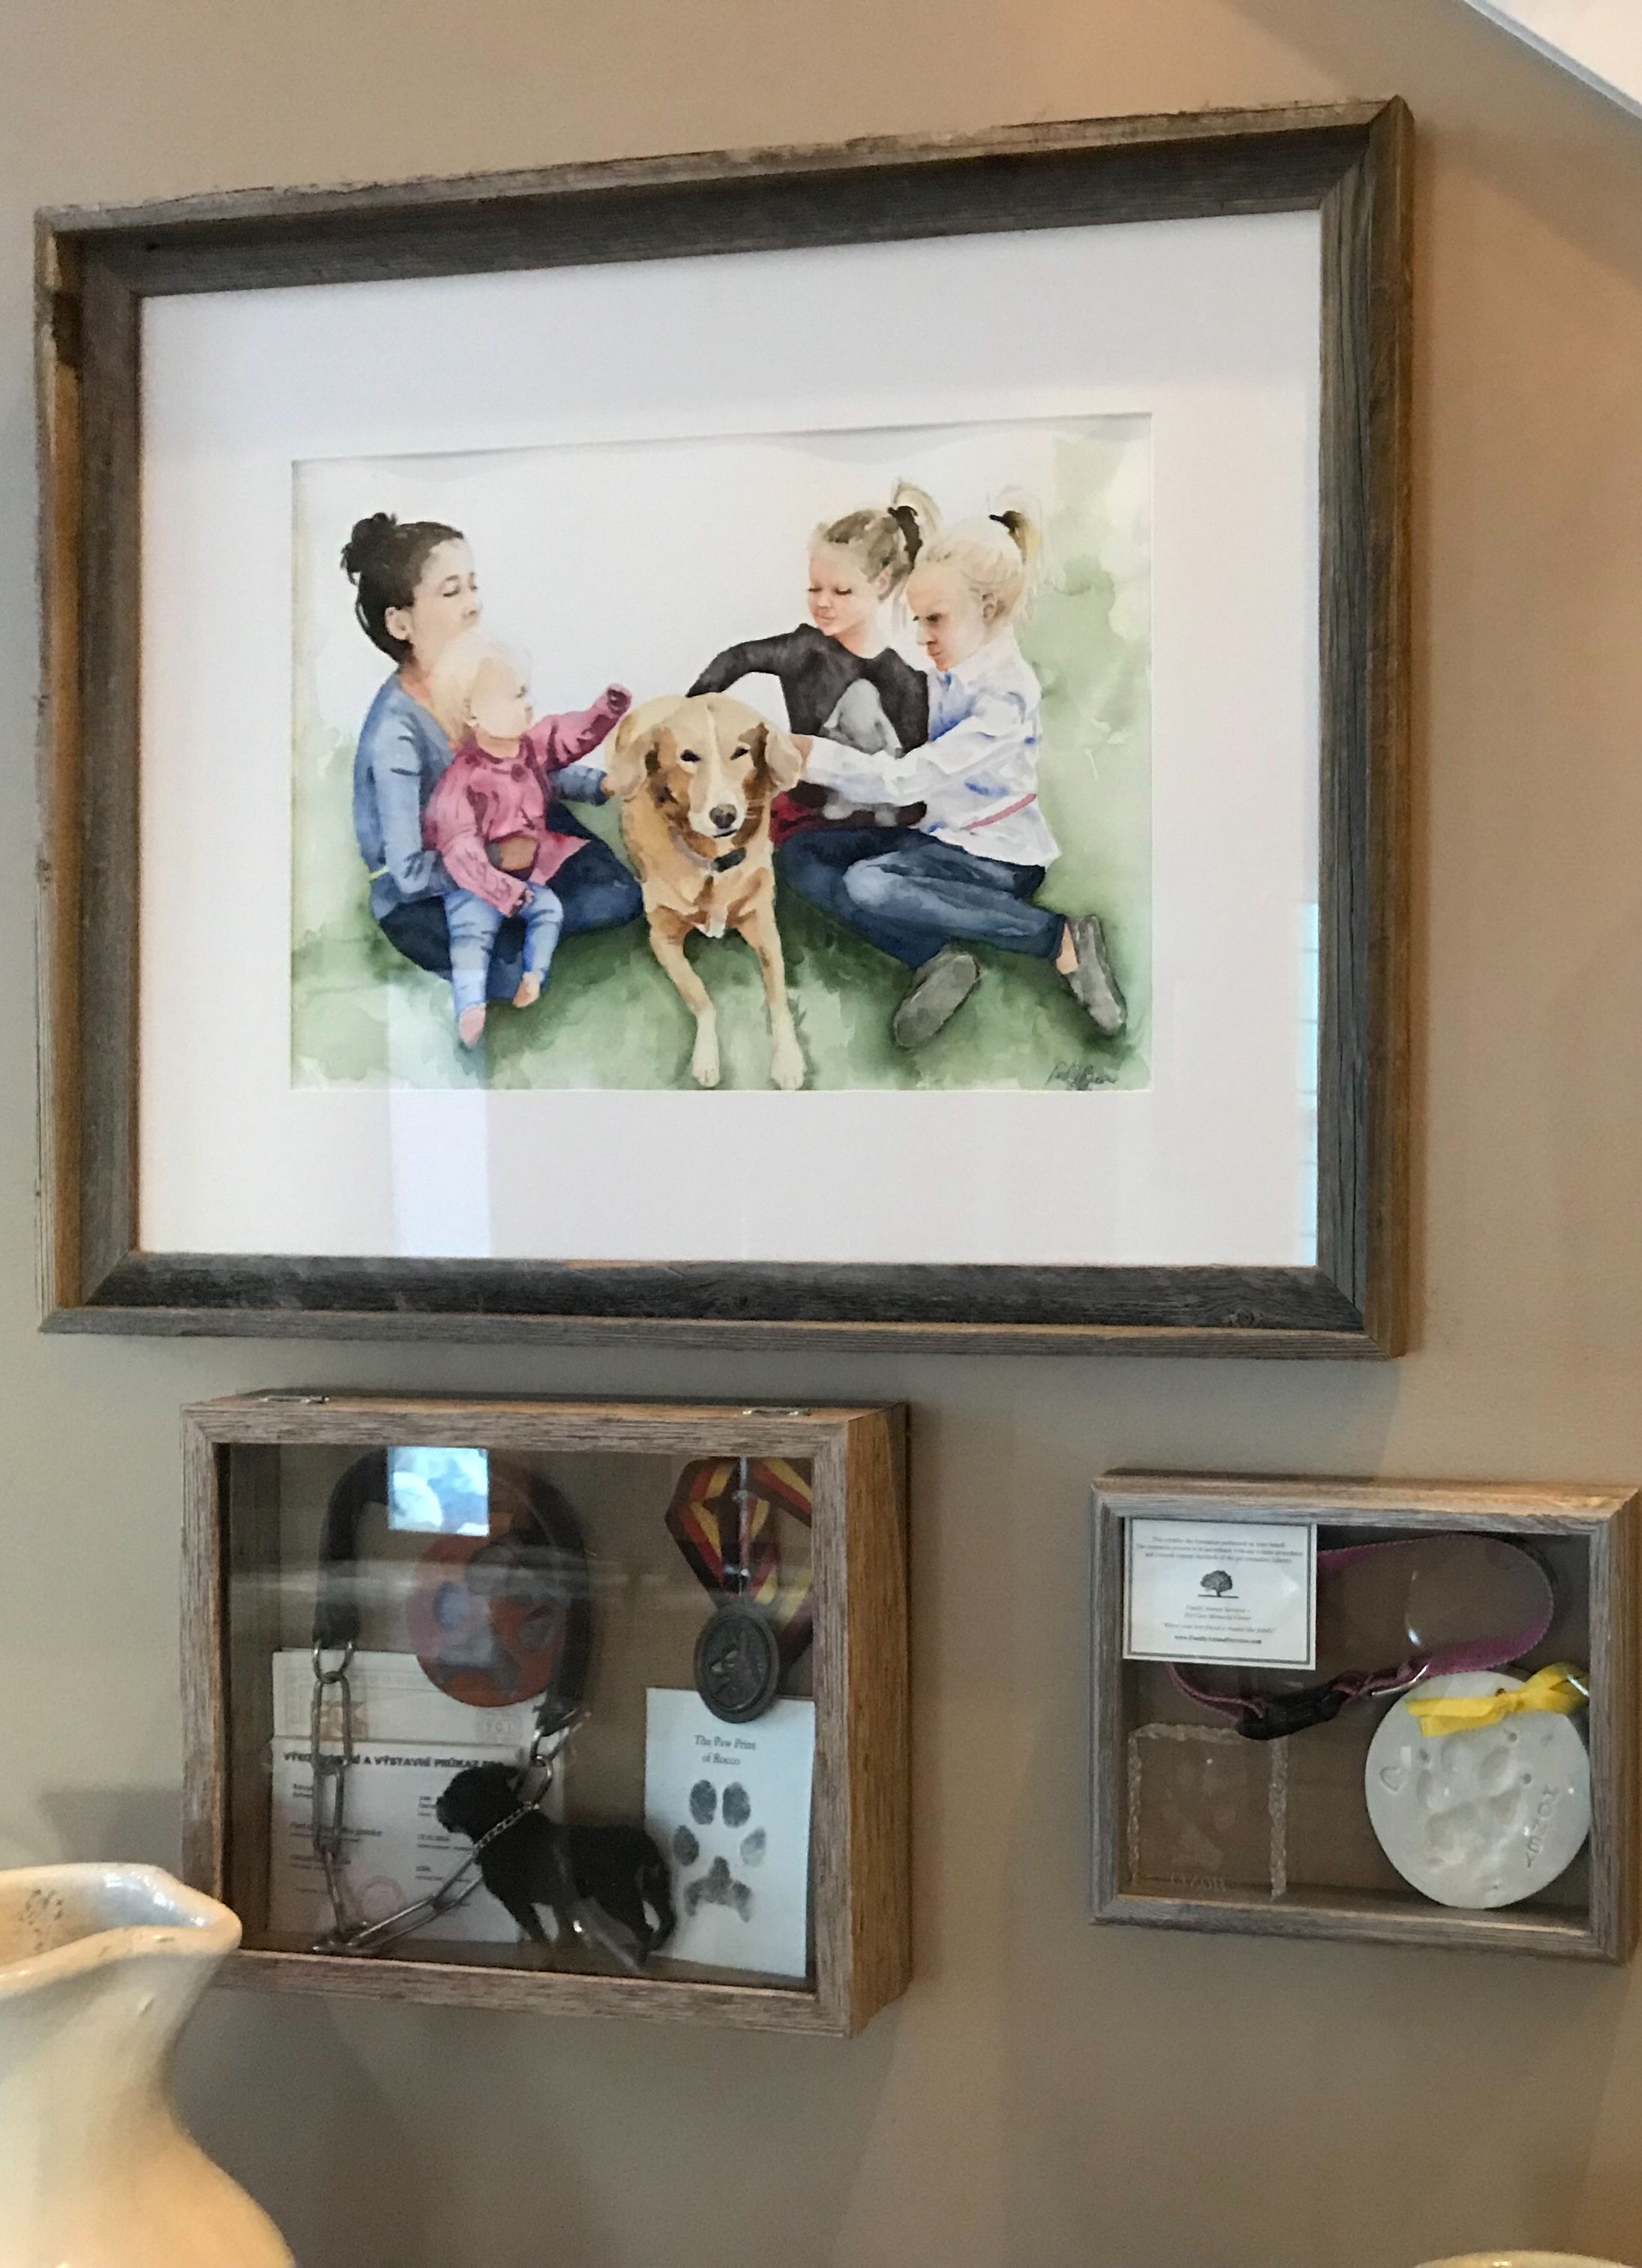 Honey Love ©PamBaumeister,2017 on the wall with other mementos of the family and their dog.